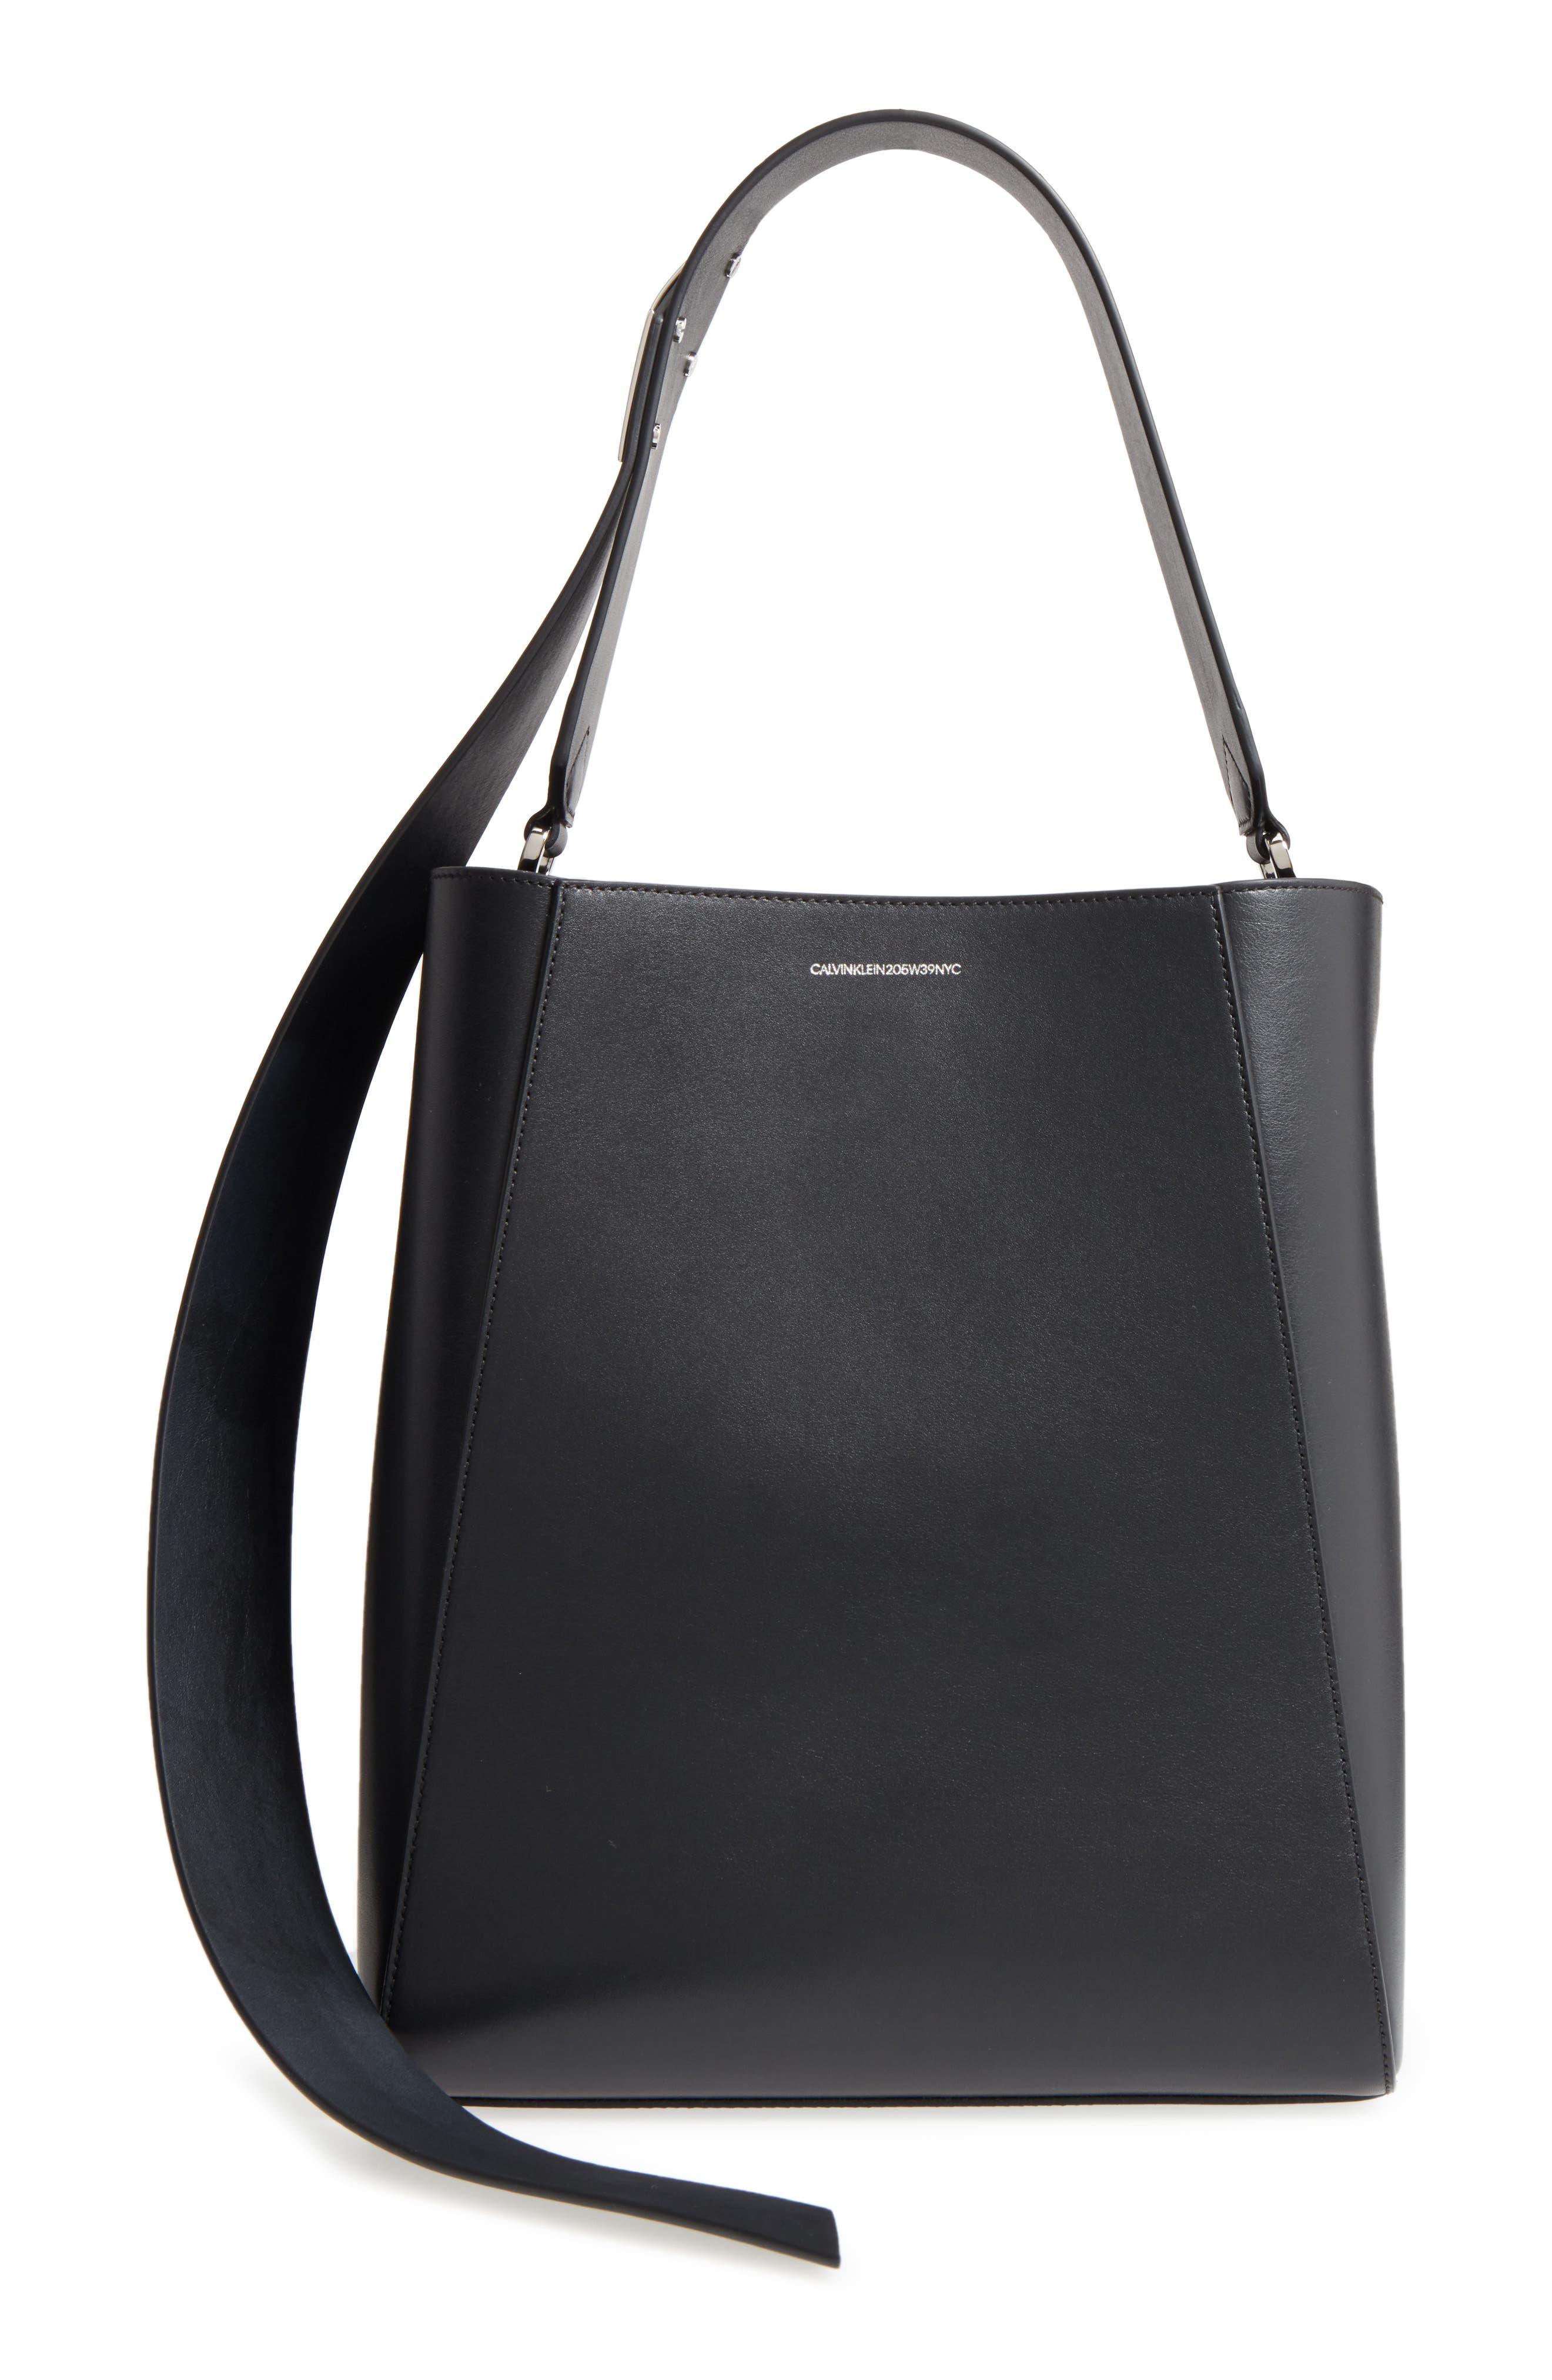 Medium Calfskin Leather Bucket Bag with Removable Pouch,                         Main,                         color, 001